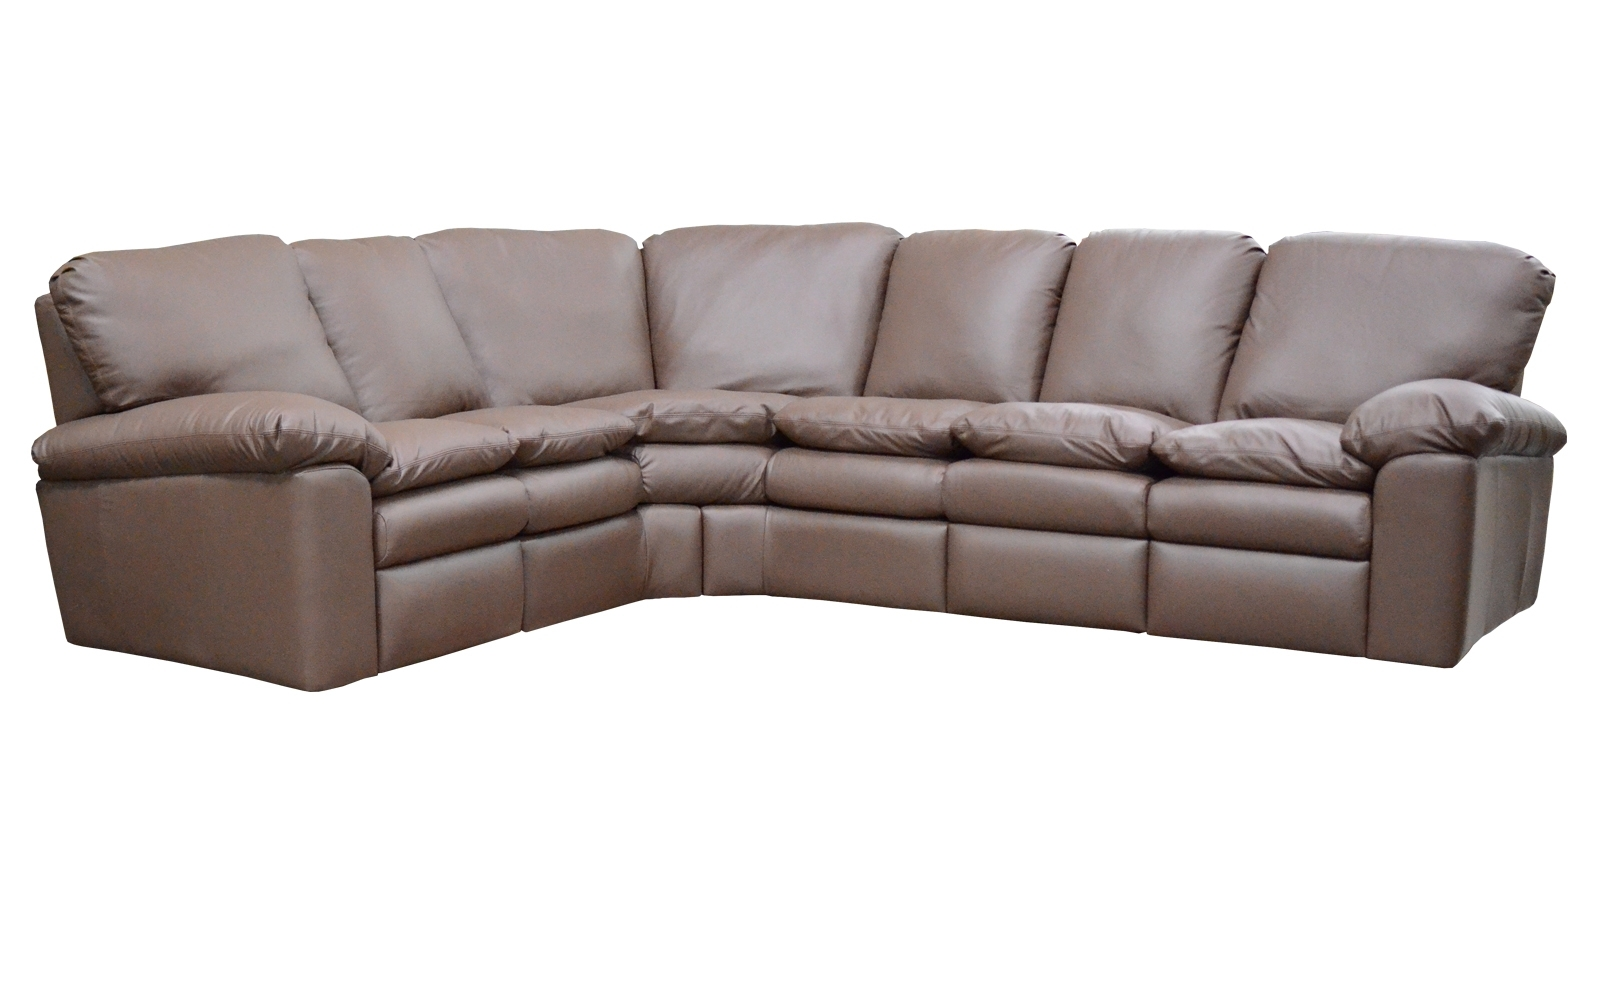 Latest El Dorado Sectional – Omnia Leather With Regard To El Dorado Sectional Sofas (View 13 of 20)